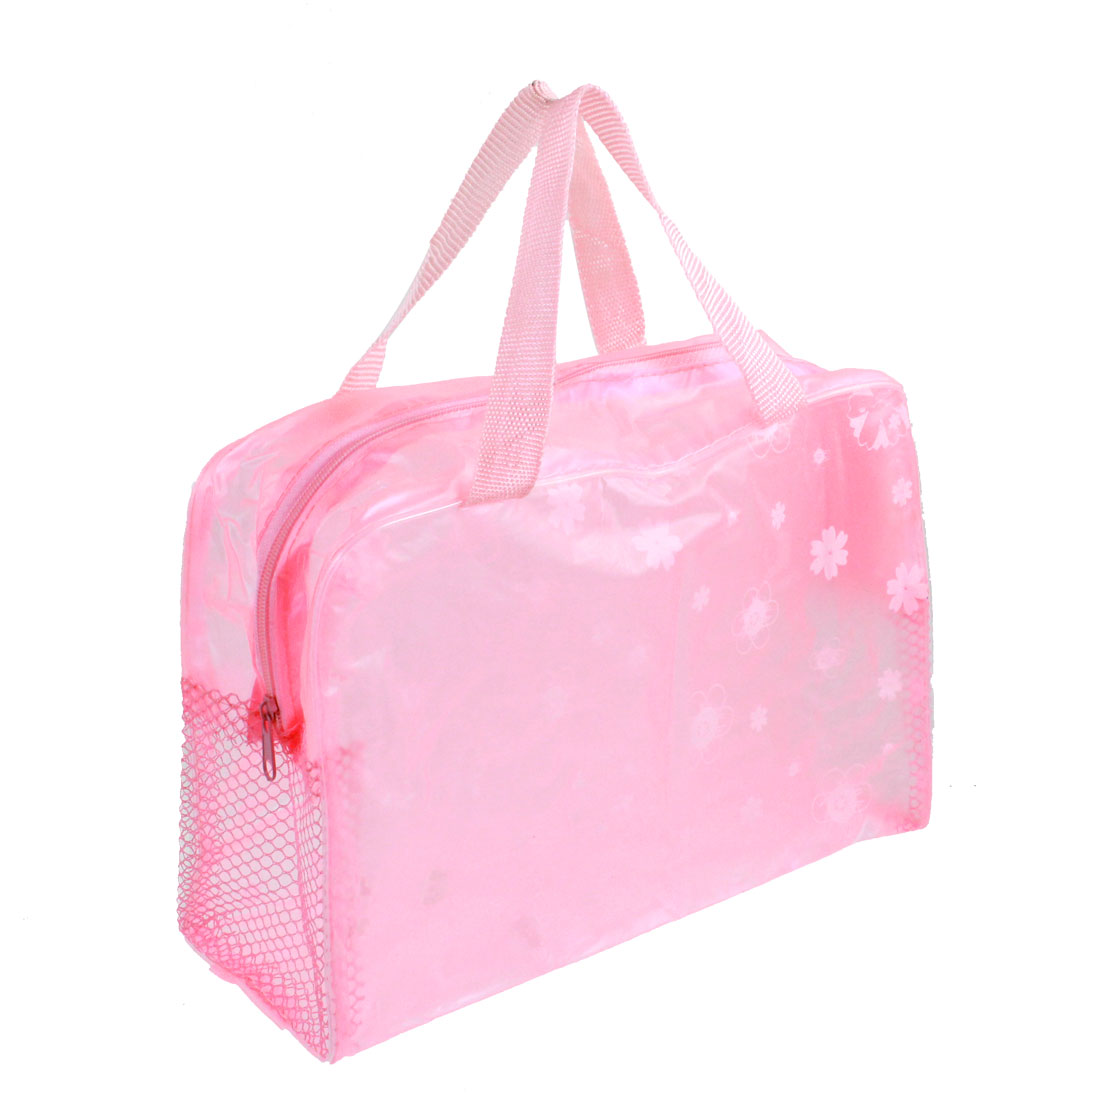 Foldable Zipper Meshy Flower Pattern Pink Clear Bathroom Shower Wash Bag